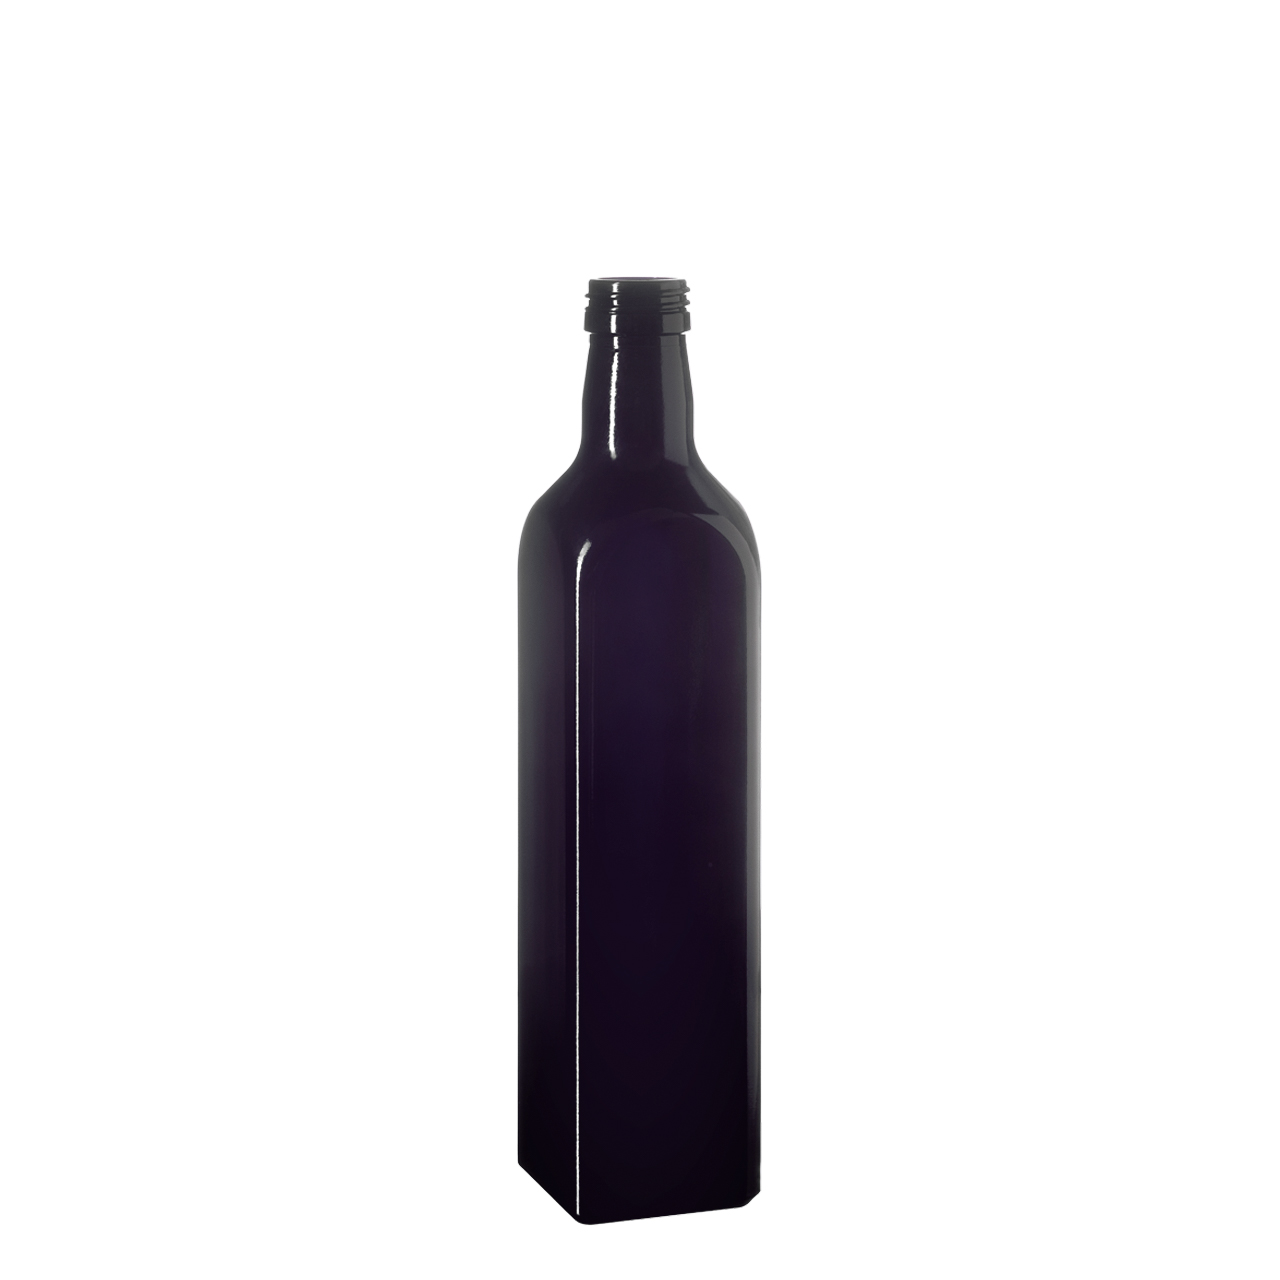 Oil bottle Castor 500 ml, Miron, 31.5 STD thread (square)